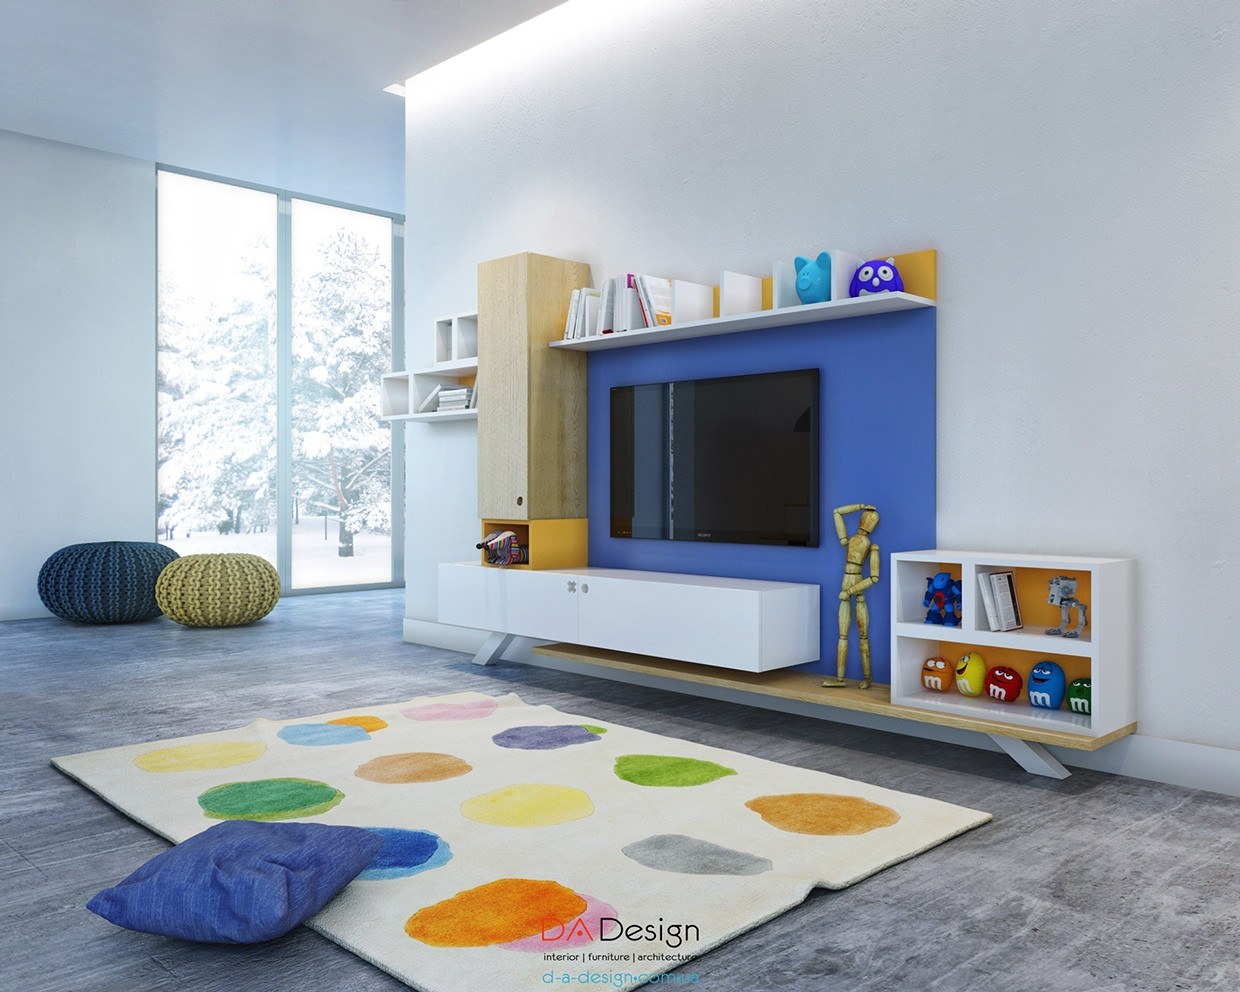 Best ideas about Tv For Kids Room . Save or Pin kids playroom ideas Now.